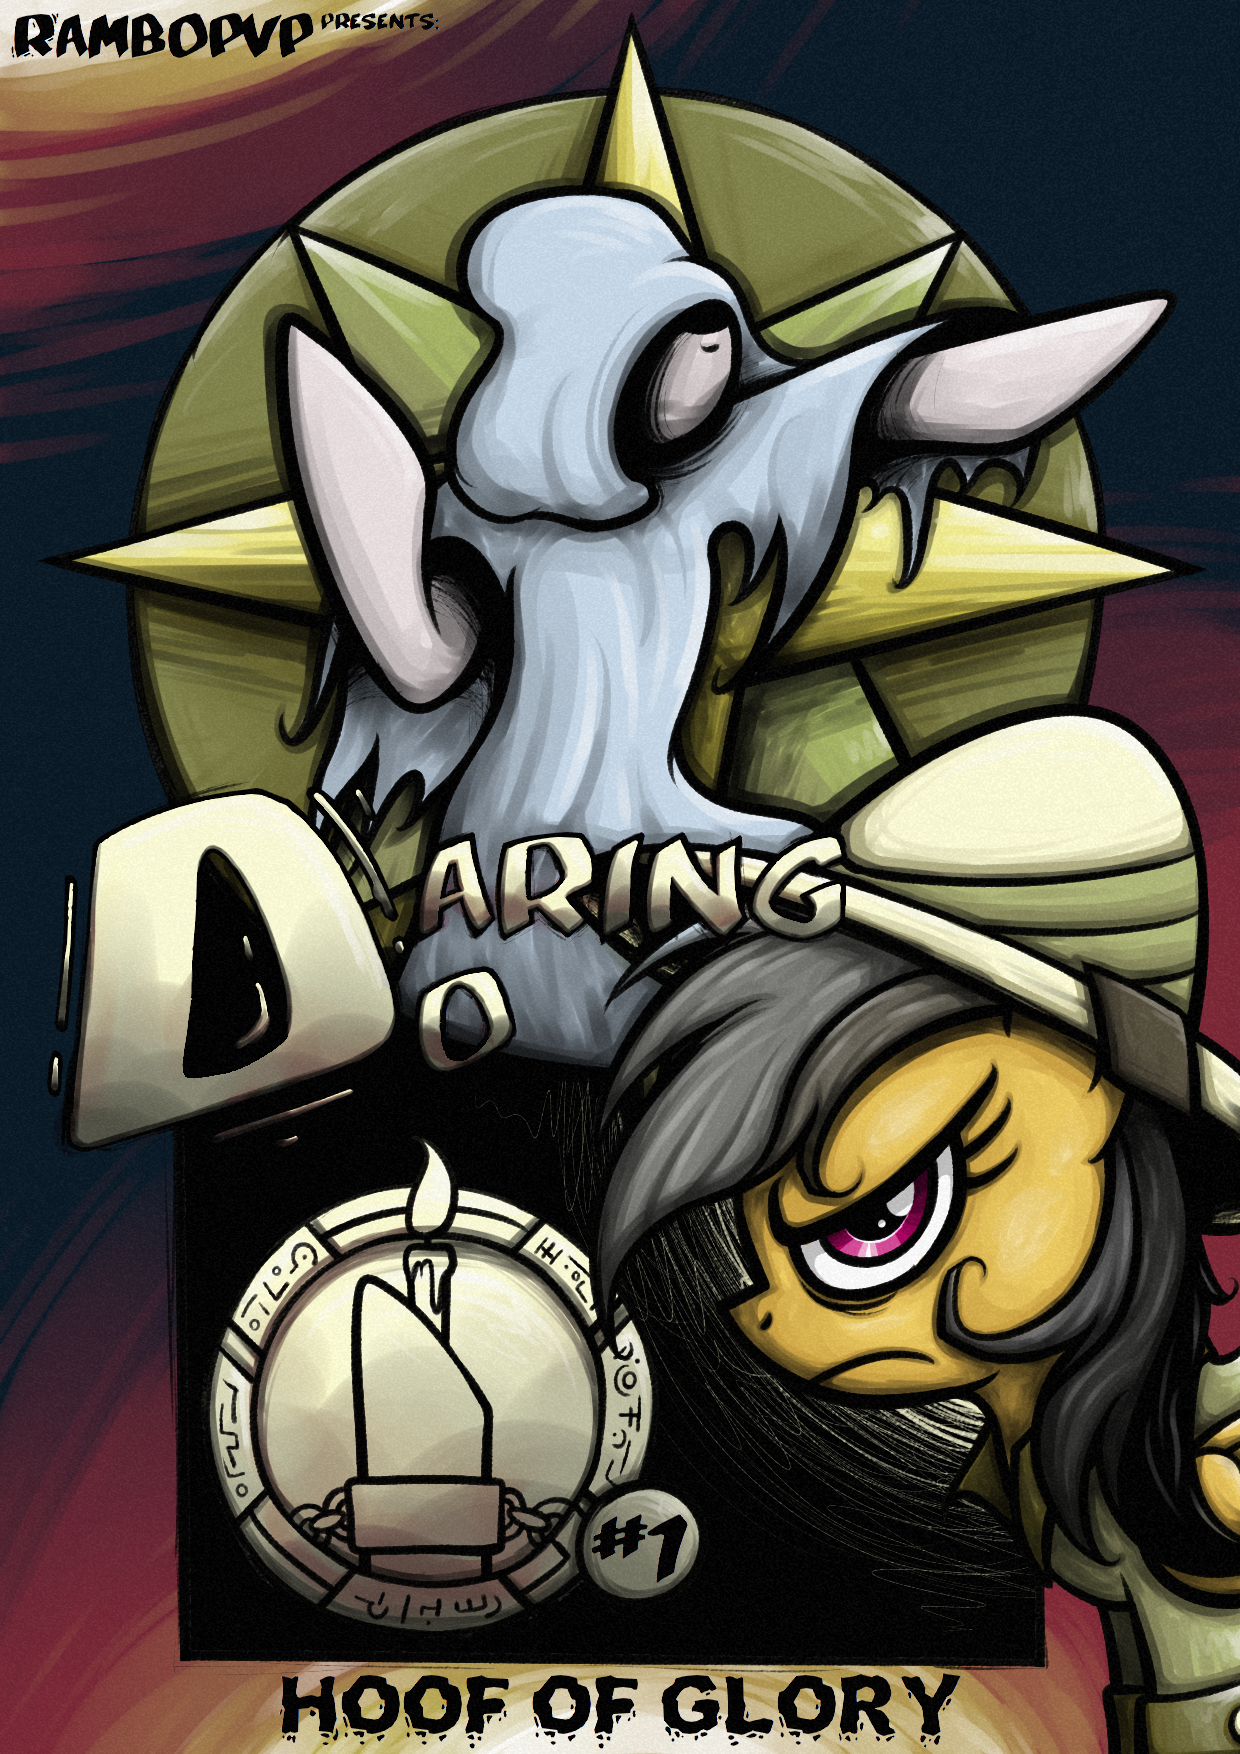 [DD] Daring Do and the Hoof of Glory #1